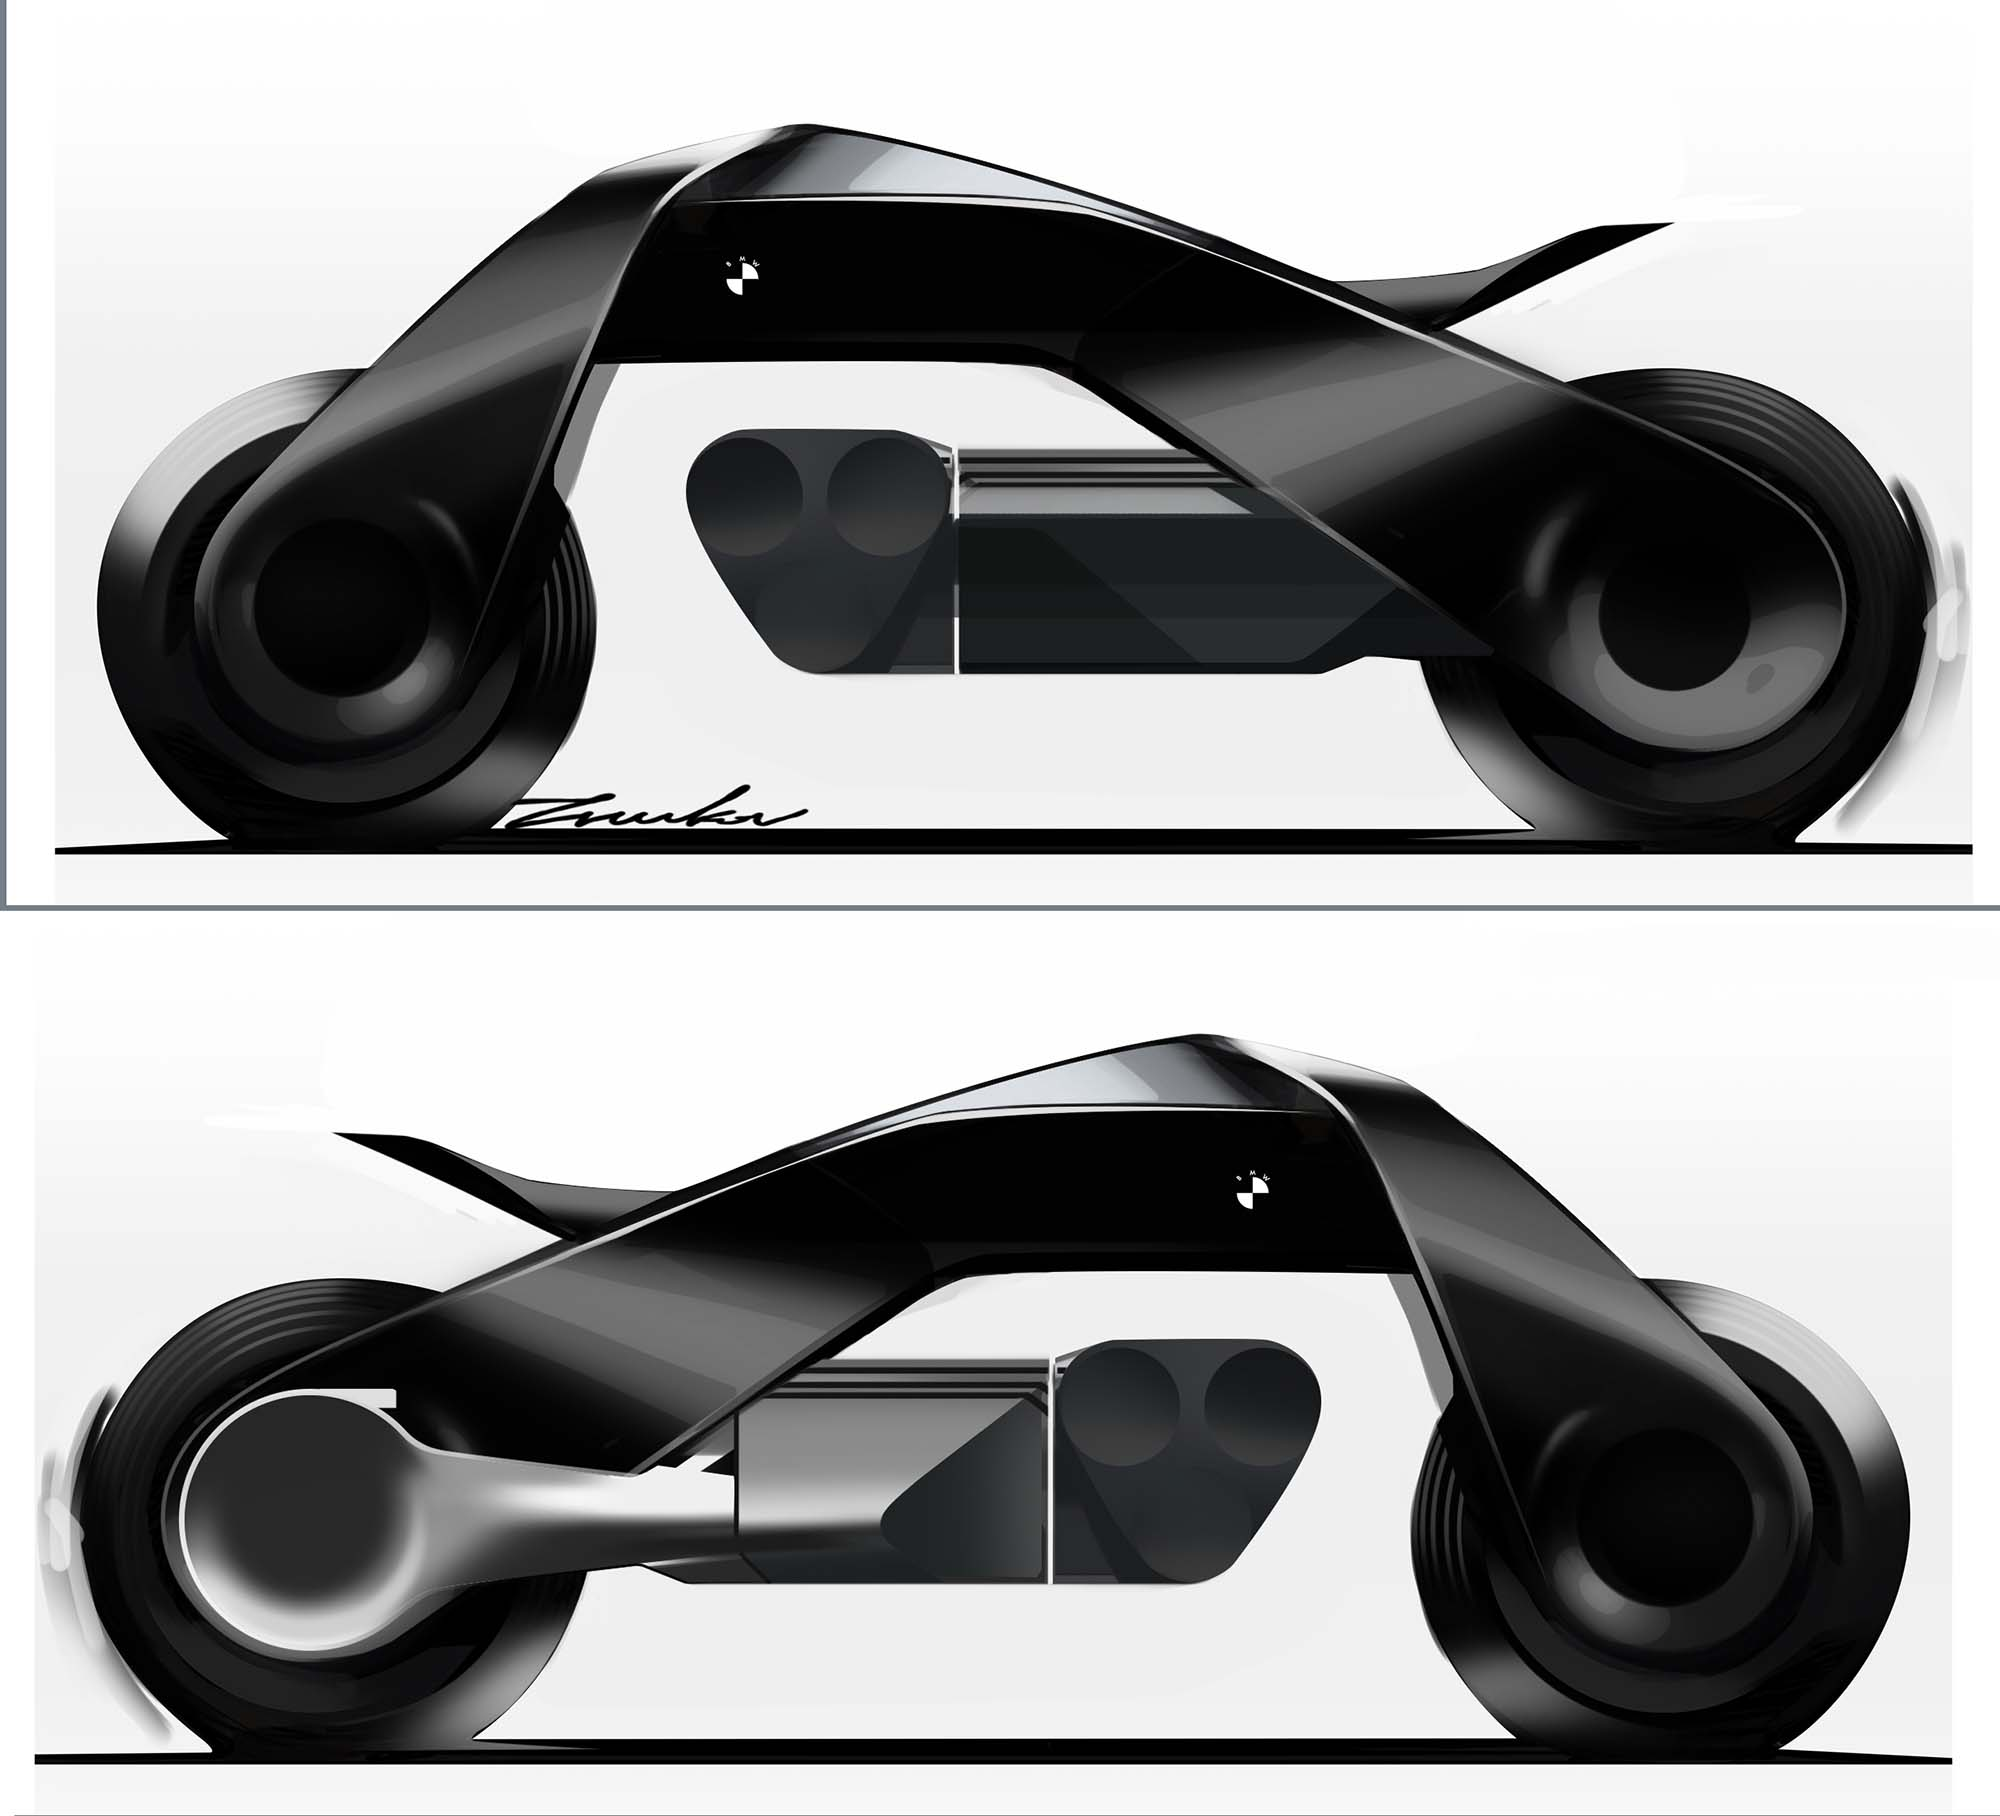 Powerslide Next 100 Review: BMW VISION NEXT 100 Concept Is The Future Of Motorcycles